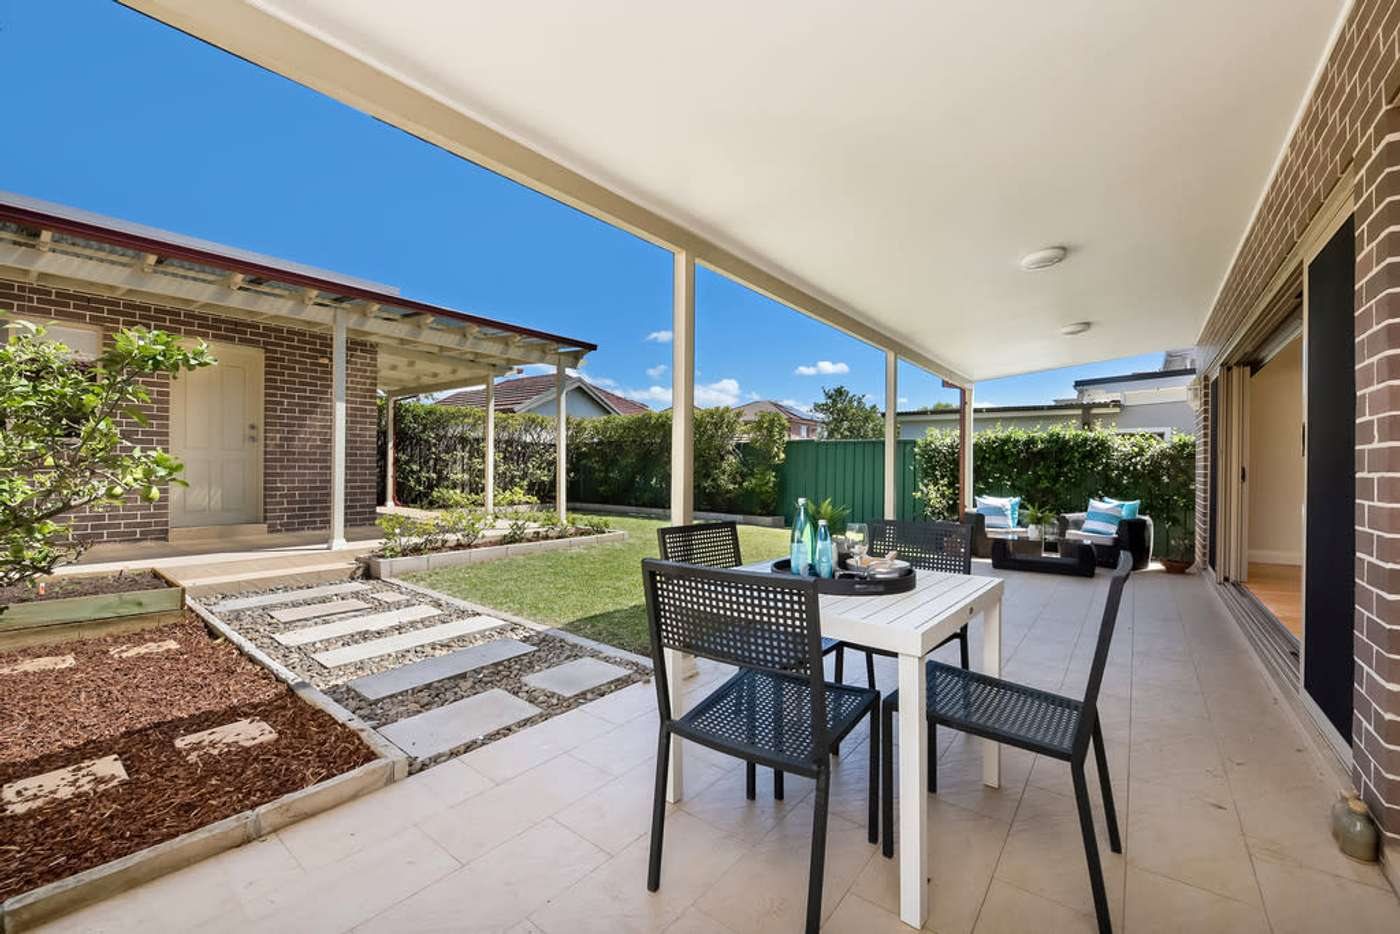 Sixth view of Homely house listing, 17 Kirrang Street, Wareemba NSW 2046